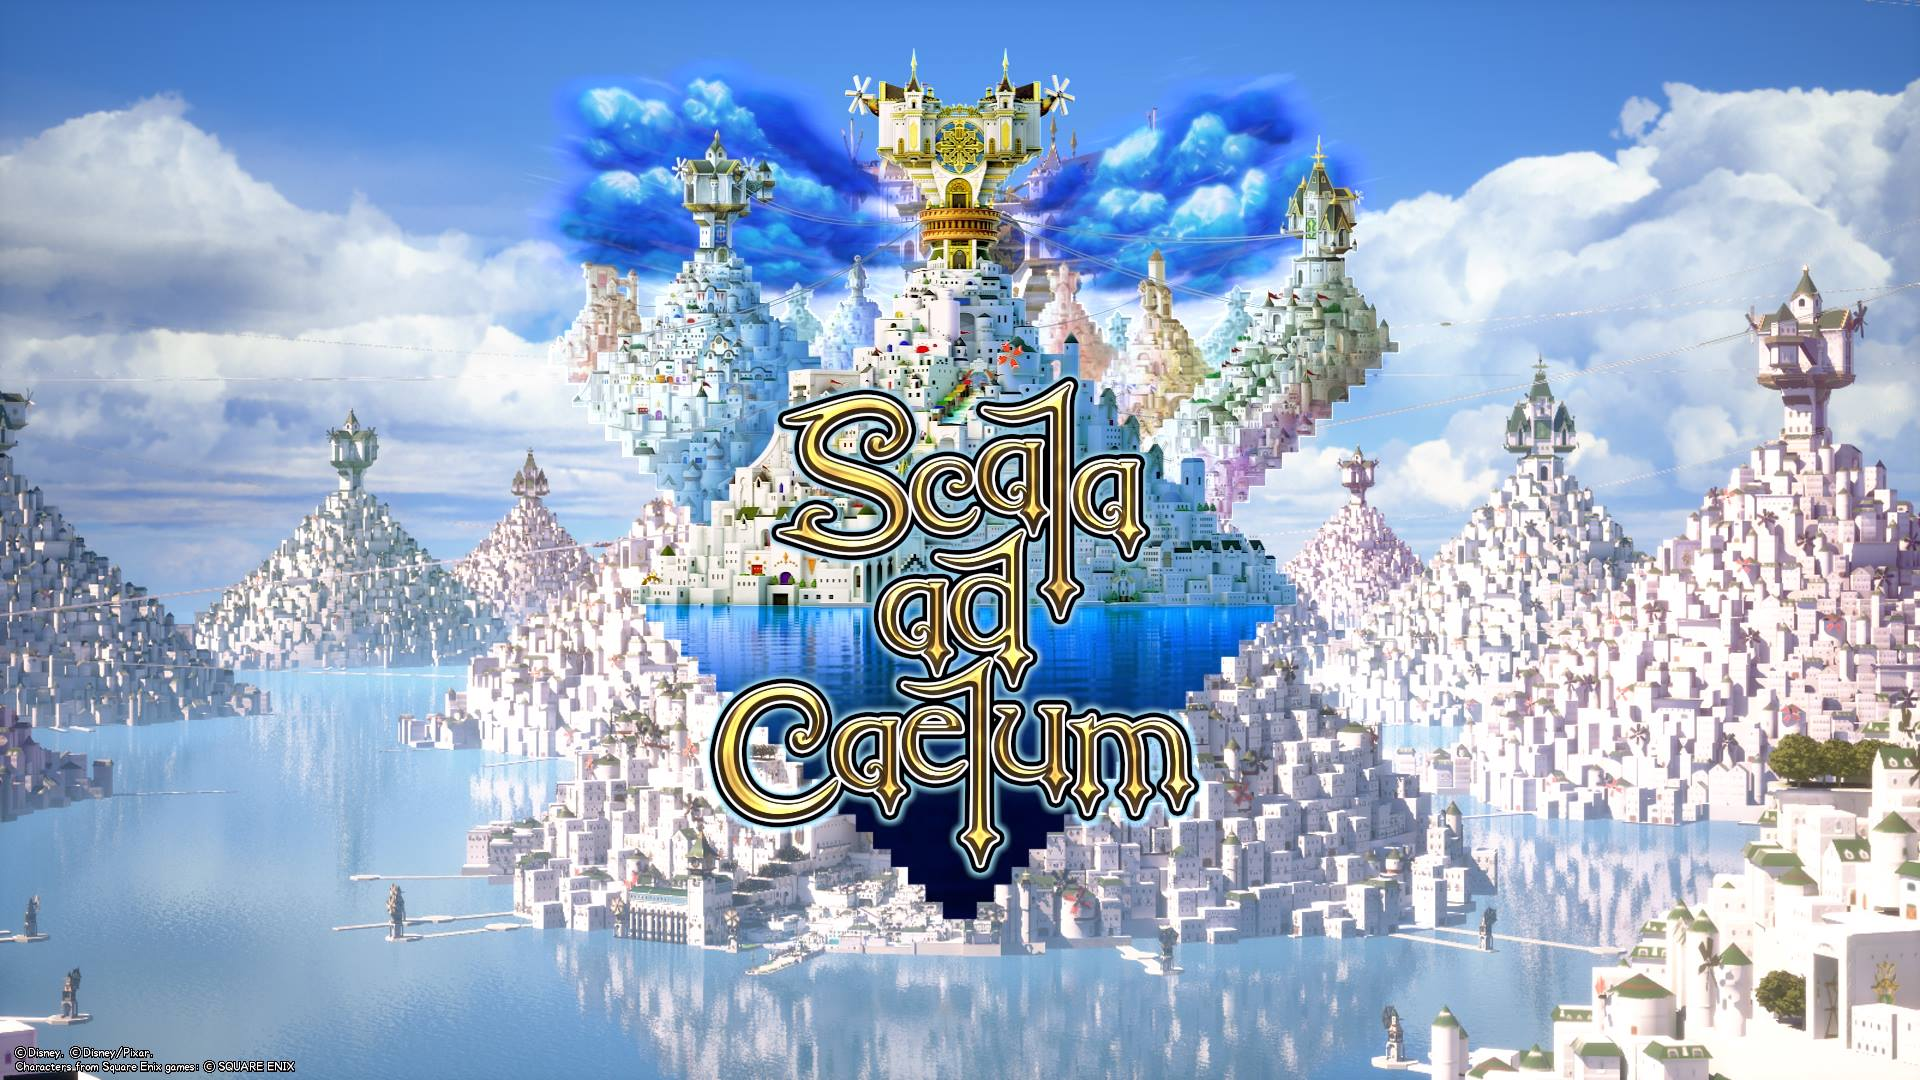 The final world that you'll unlock in Kingdom Hearts 3 is Scala ad Caelum.